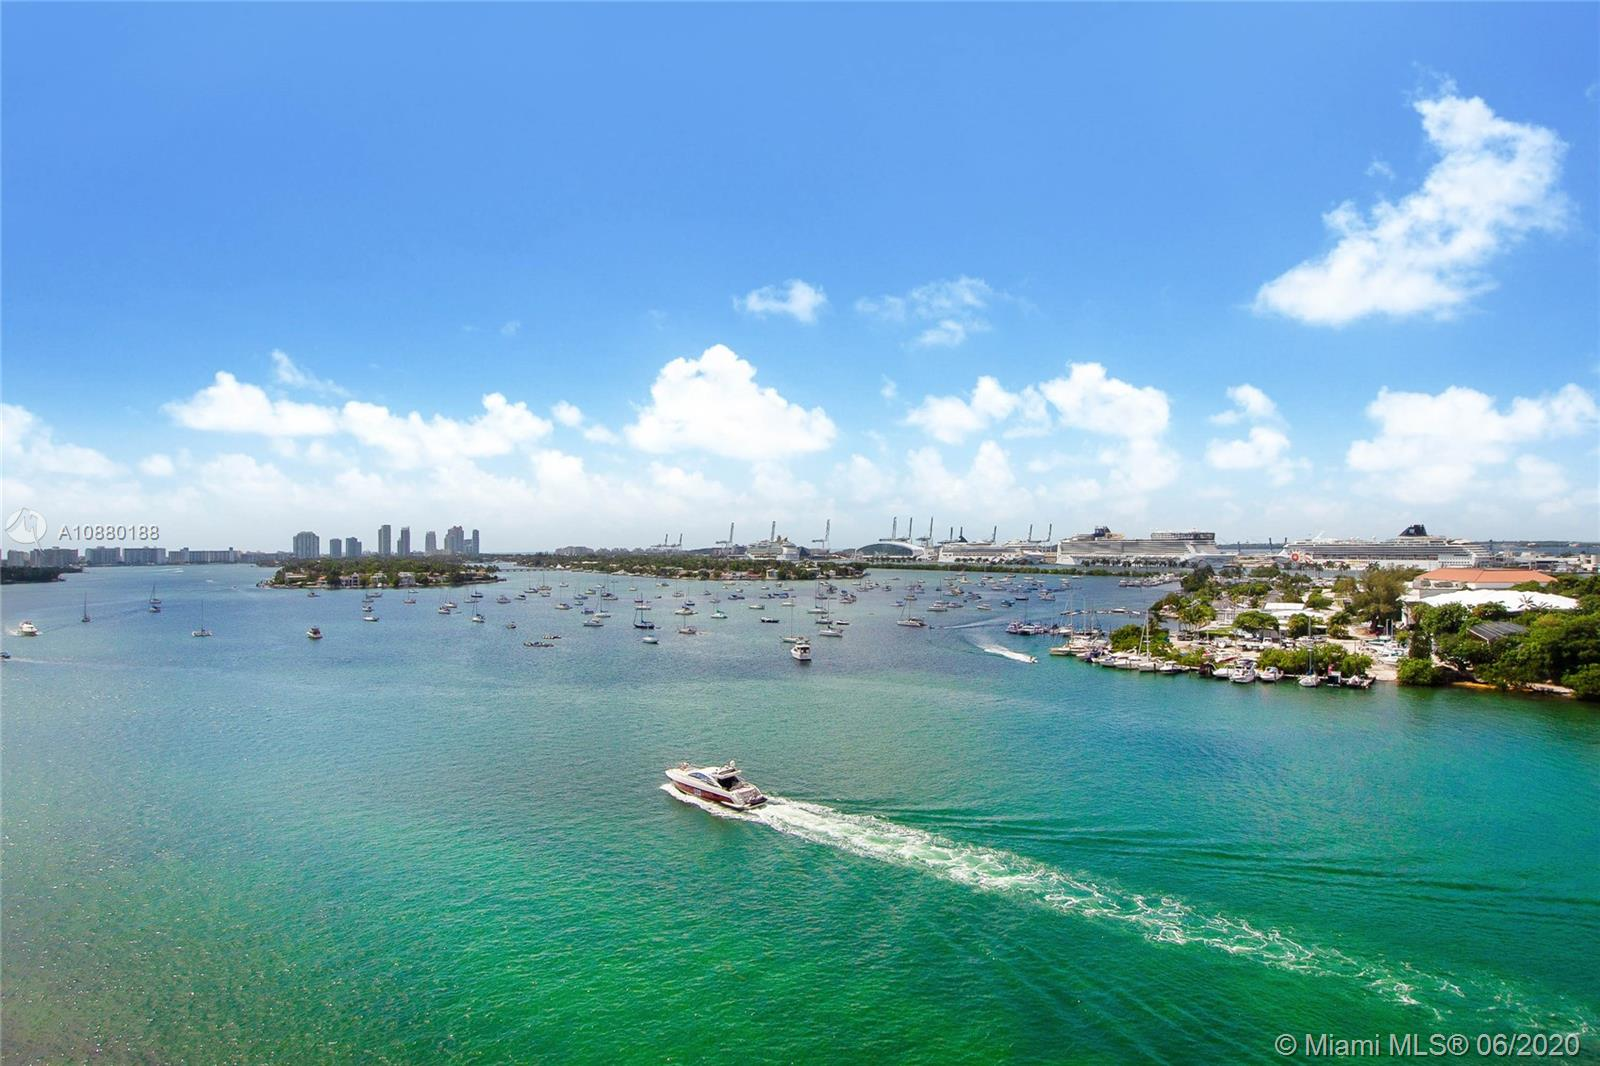 Panoramic views of Biscayne Bay & the Miami skyline await you in this corner unit with stunning north, east & south views. The unique living area has three walls of 9' floor-to-ceiling, hurricane-proof impact glass opening onto a 1,000SF of U-shaped terrace, creating a dynamic home perfect for entertaining. This 2bed/2bath (1,830SF) home seamlessly blends interior and exterior living spaces with all rooms having direct access to the oversized terrace and the most spectacular views in town! 2 assigned parking spaces and easy to show.